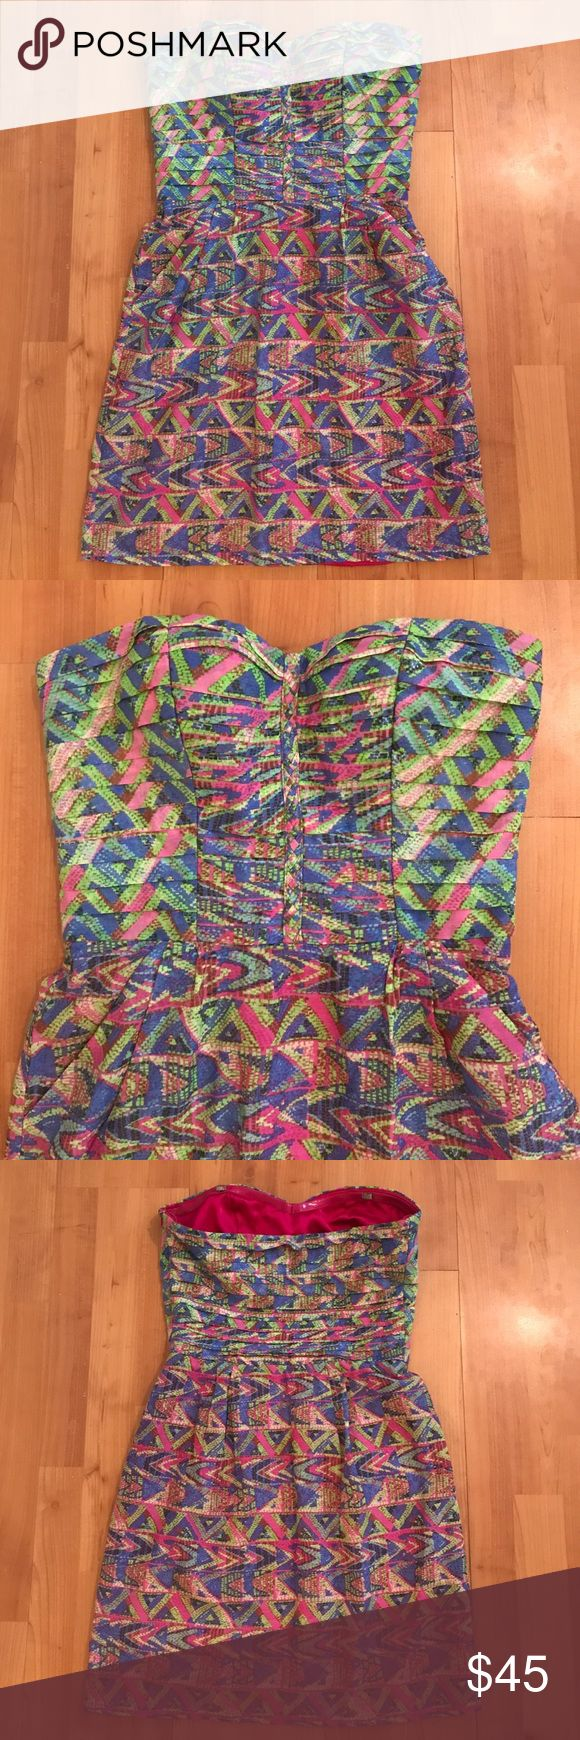 Charlie Jade Dress Fun multi-colored print dress with pockets. Great Condition. Small Petite. Charlie Jade Dresses